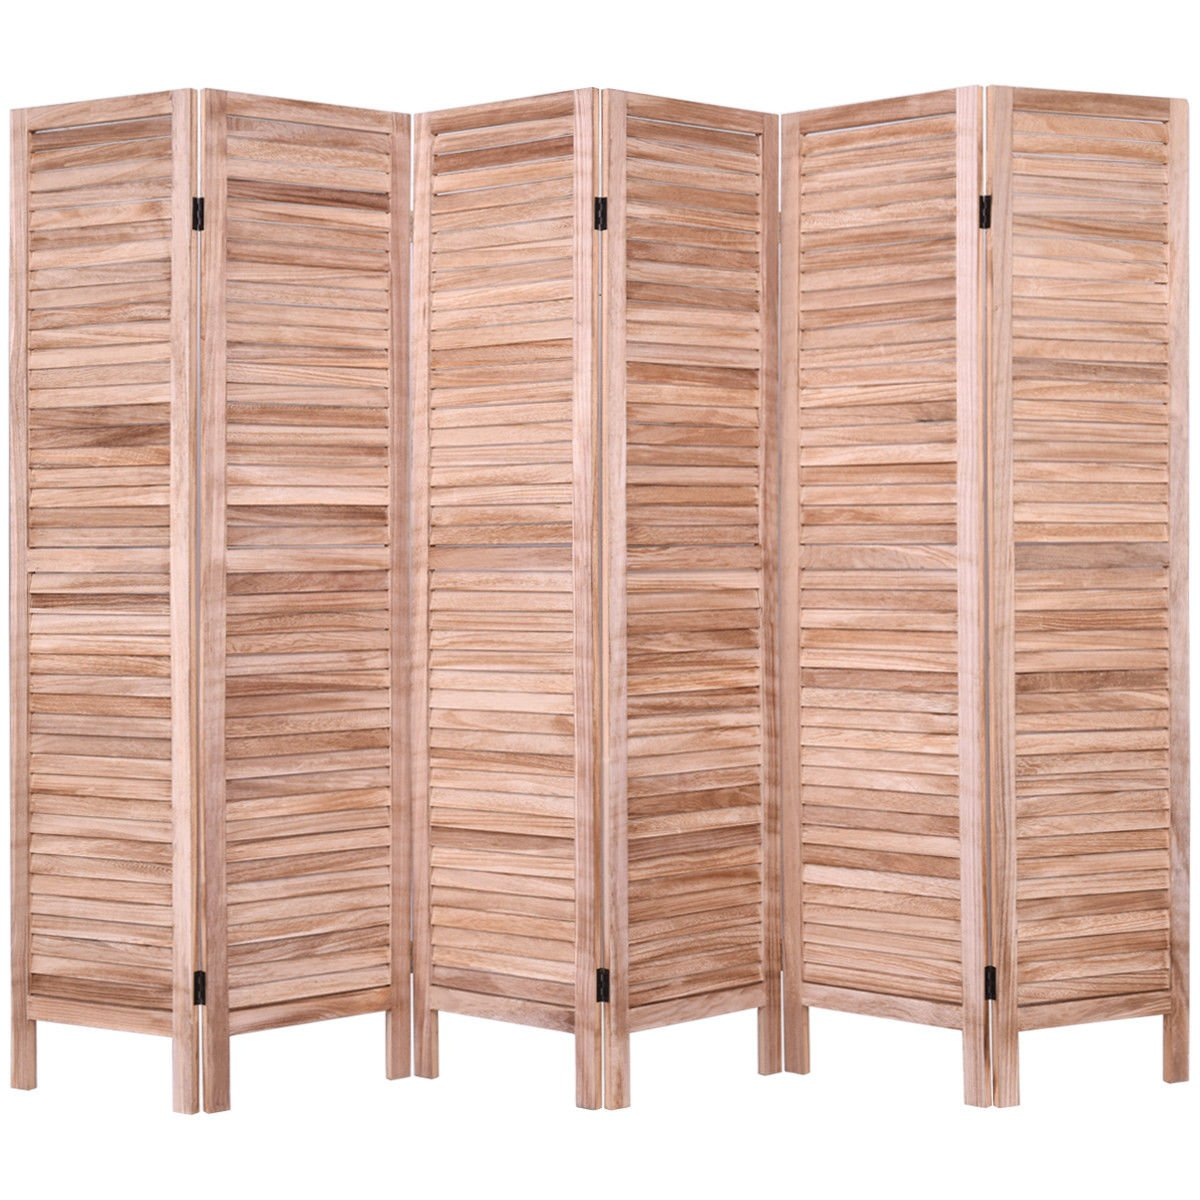 Get Quotations Giantex 6 Panel Screen Room Divider Wood Folding Oriental Freestanding Tall Parion Privacy